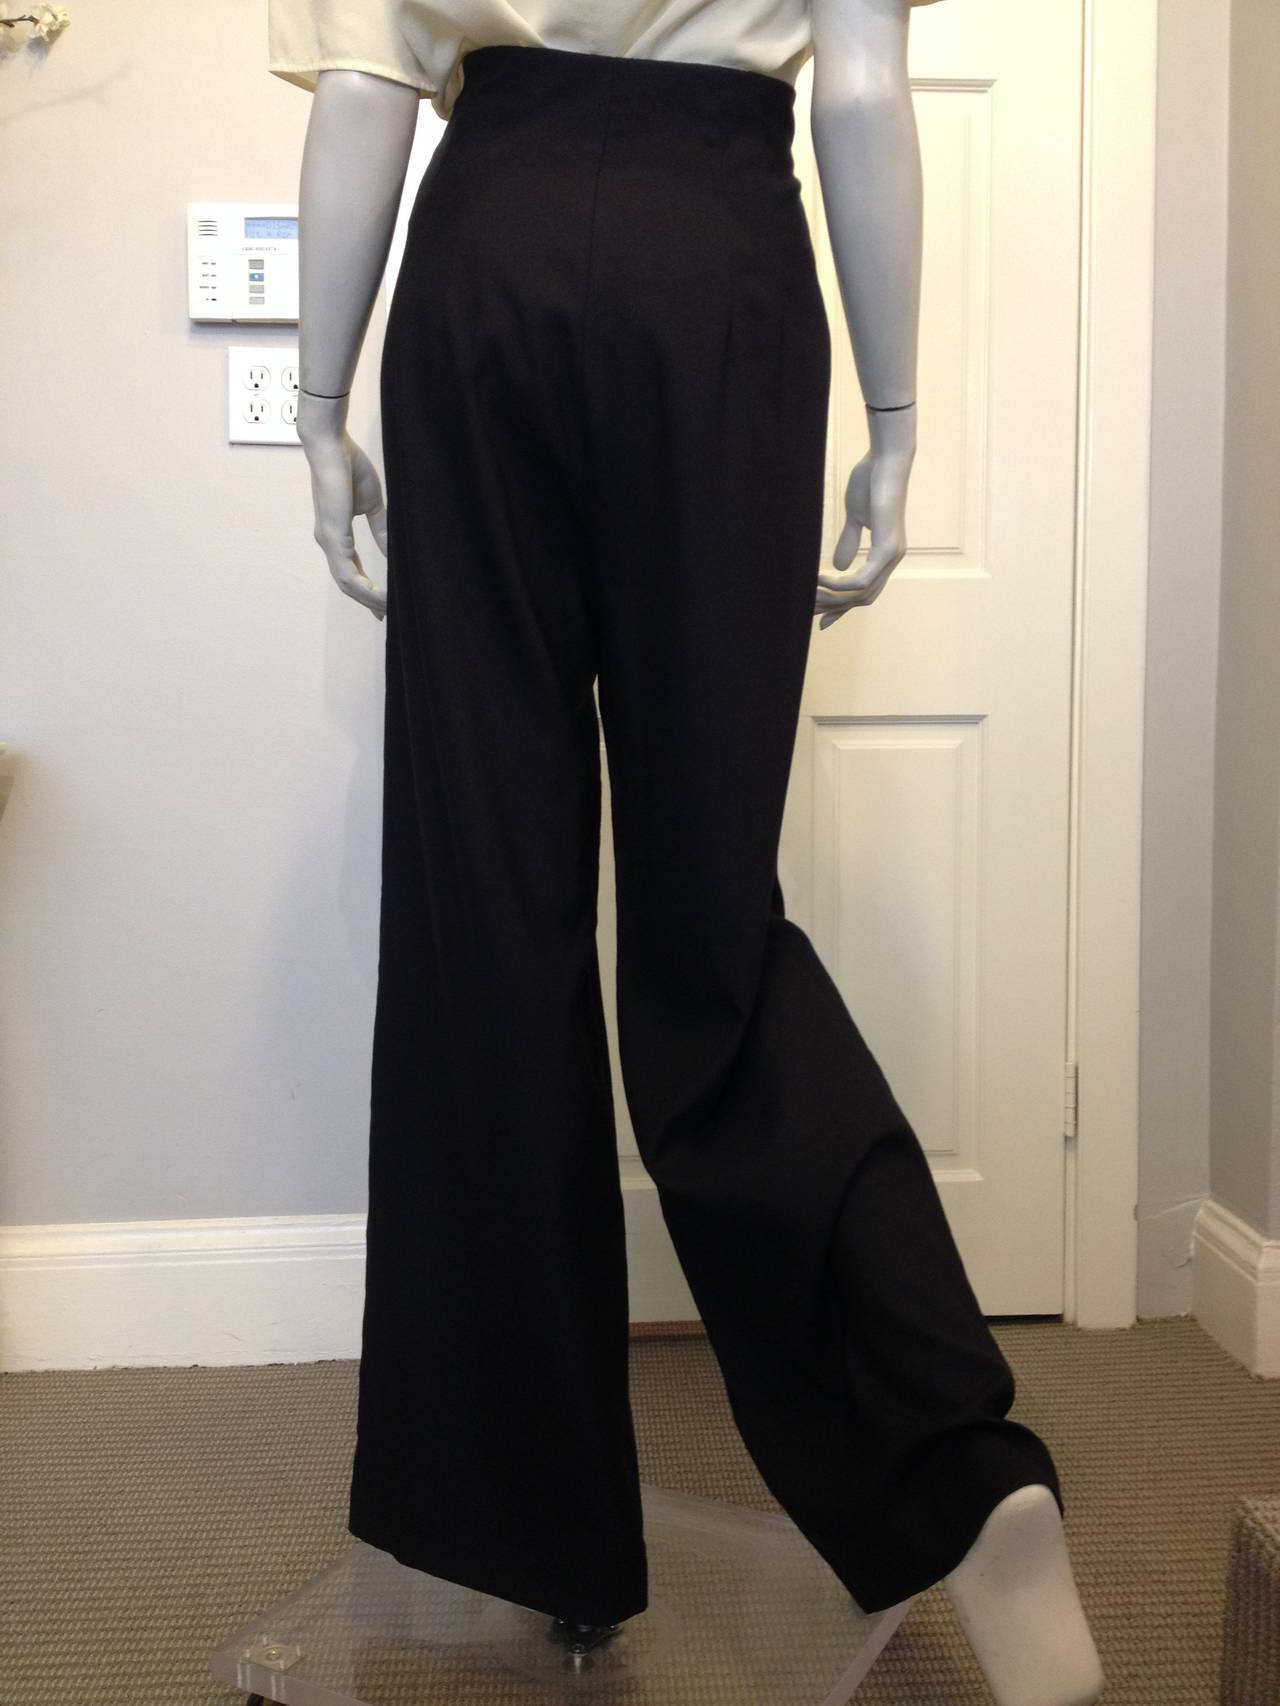 The Row Black Woven Wide-Leg Pants In New never worn Condition For Sale In San Francisco, CA